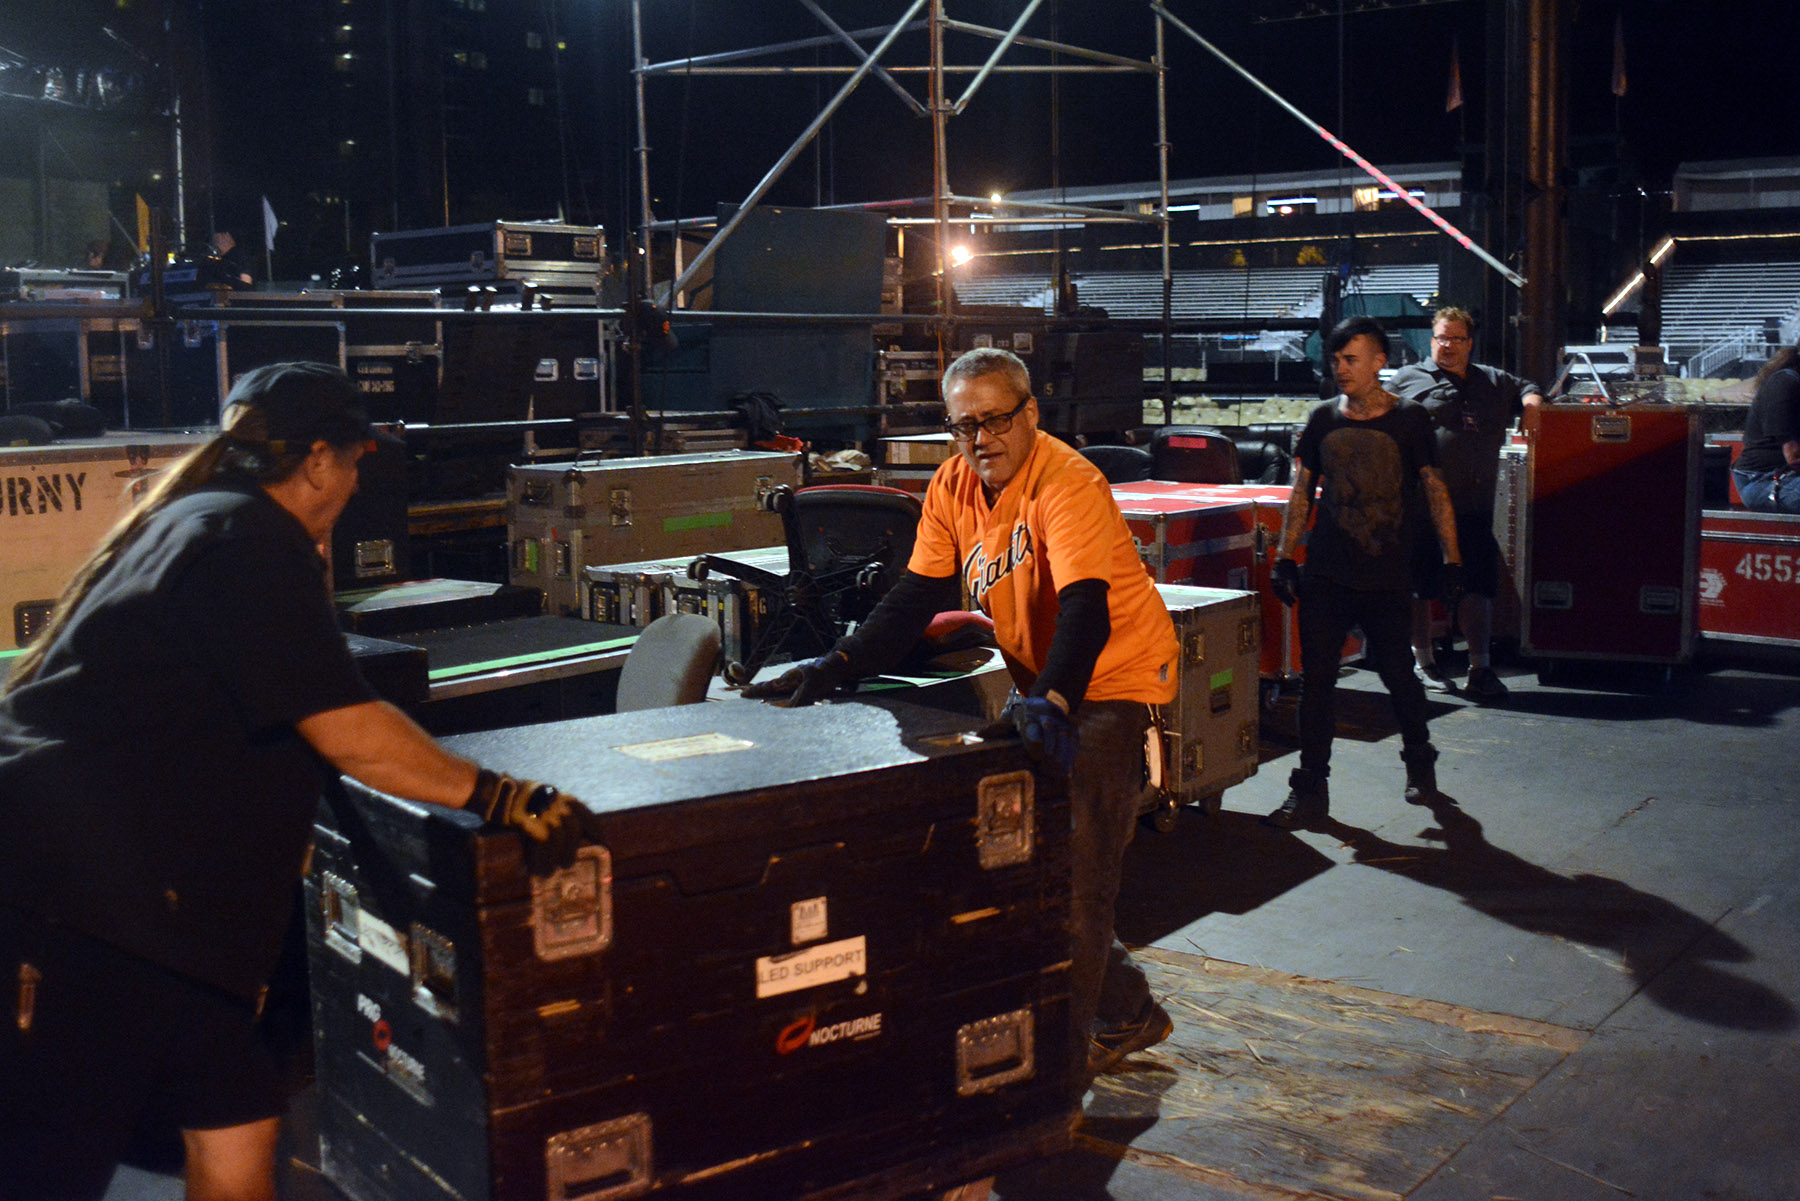 A.M. Fardella and crew break down the Harveys stage after Journey's 2013 concert. Photos by Tim Parsons / Tahoe Onstage